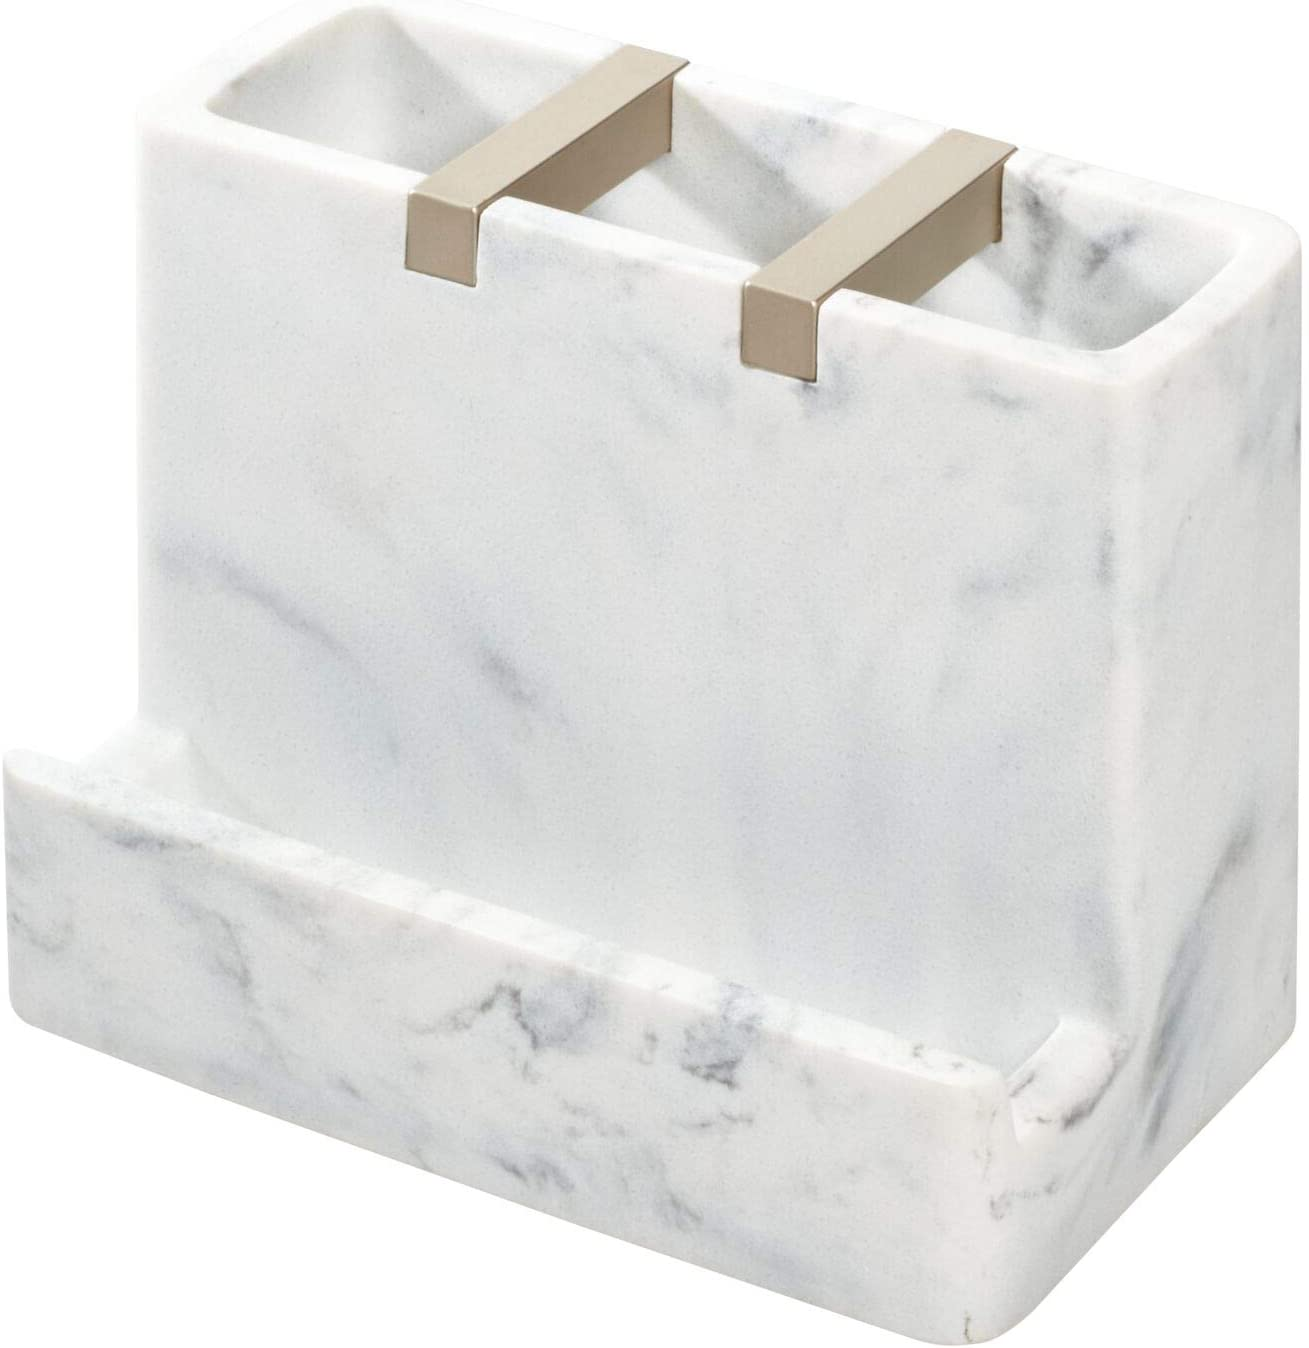 Amazon Com Idesign 28250 Dakota Resin Marble Vanity Center For Toothbrush Cell Phone Bathroom Countertops Desks Vanities Dorm Office White Marble And Satin Metal Accents Home Kitchen